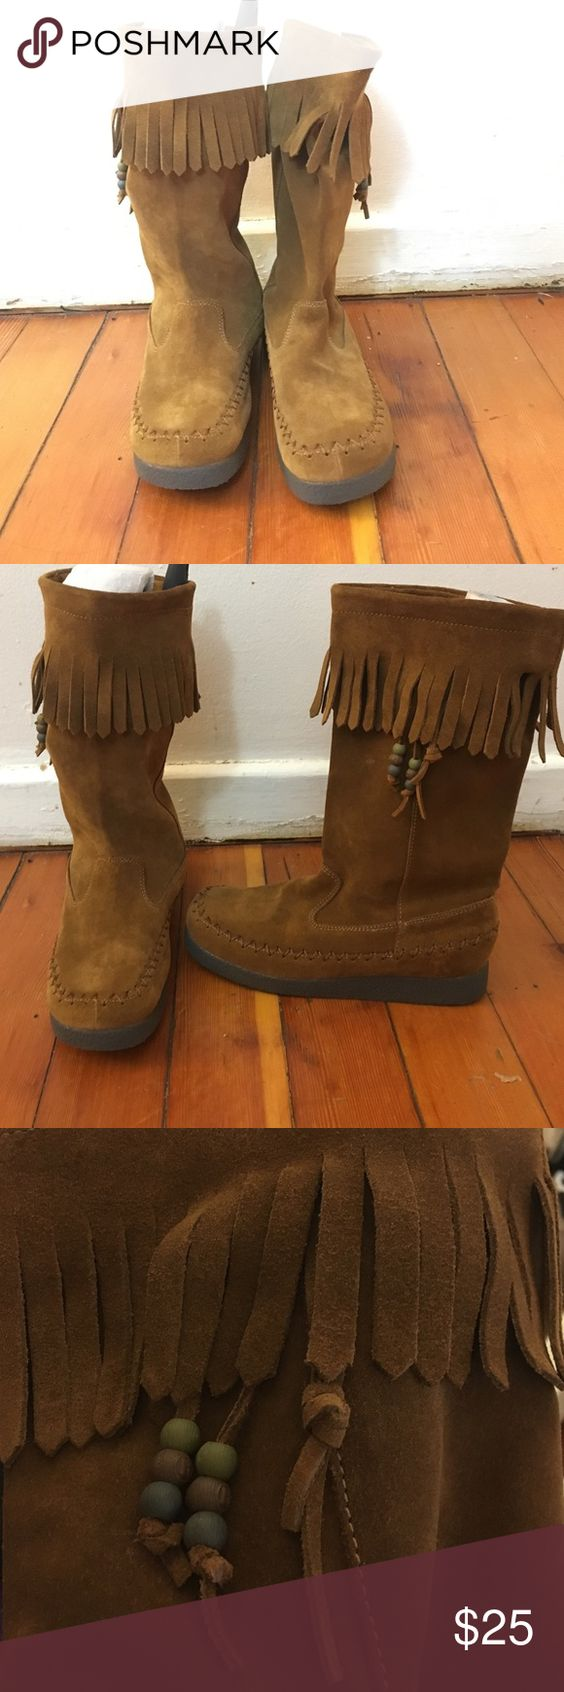 😍Report Brown Fringe Boots size 6.5 like New 💥🔥 Like new, no tags. Report Brown Fringe Boots size 6.5 great pair! Report Shoes Moccasins